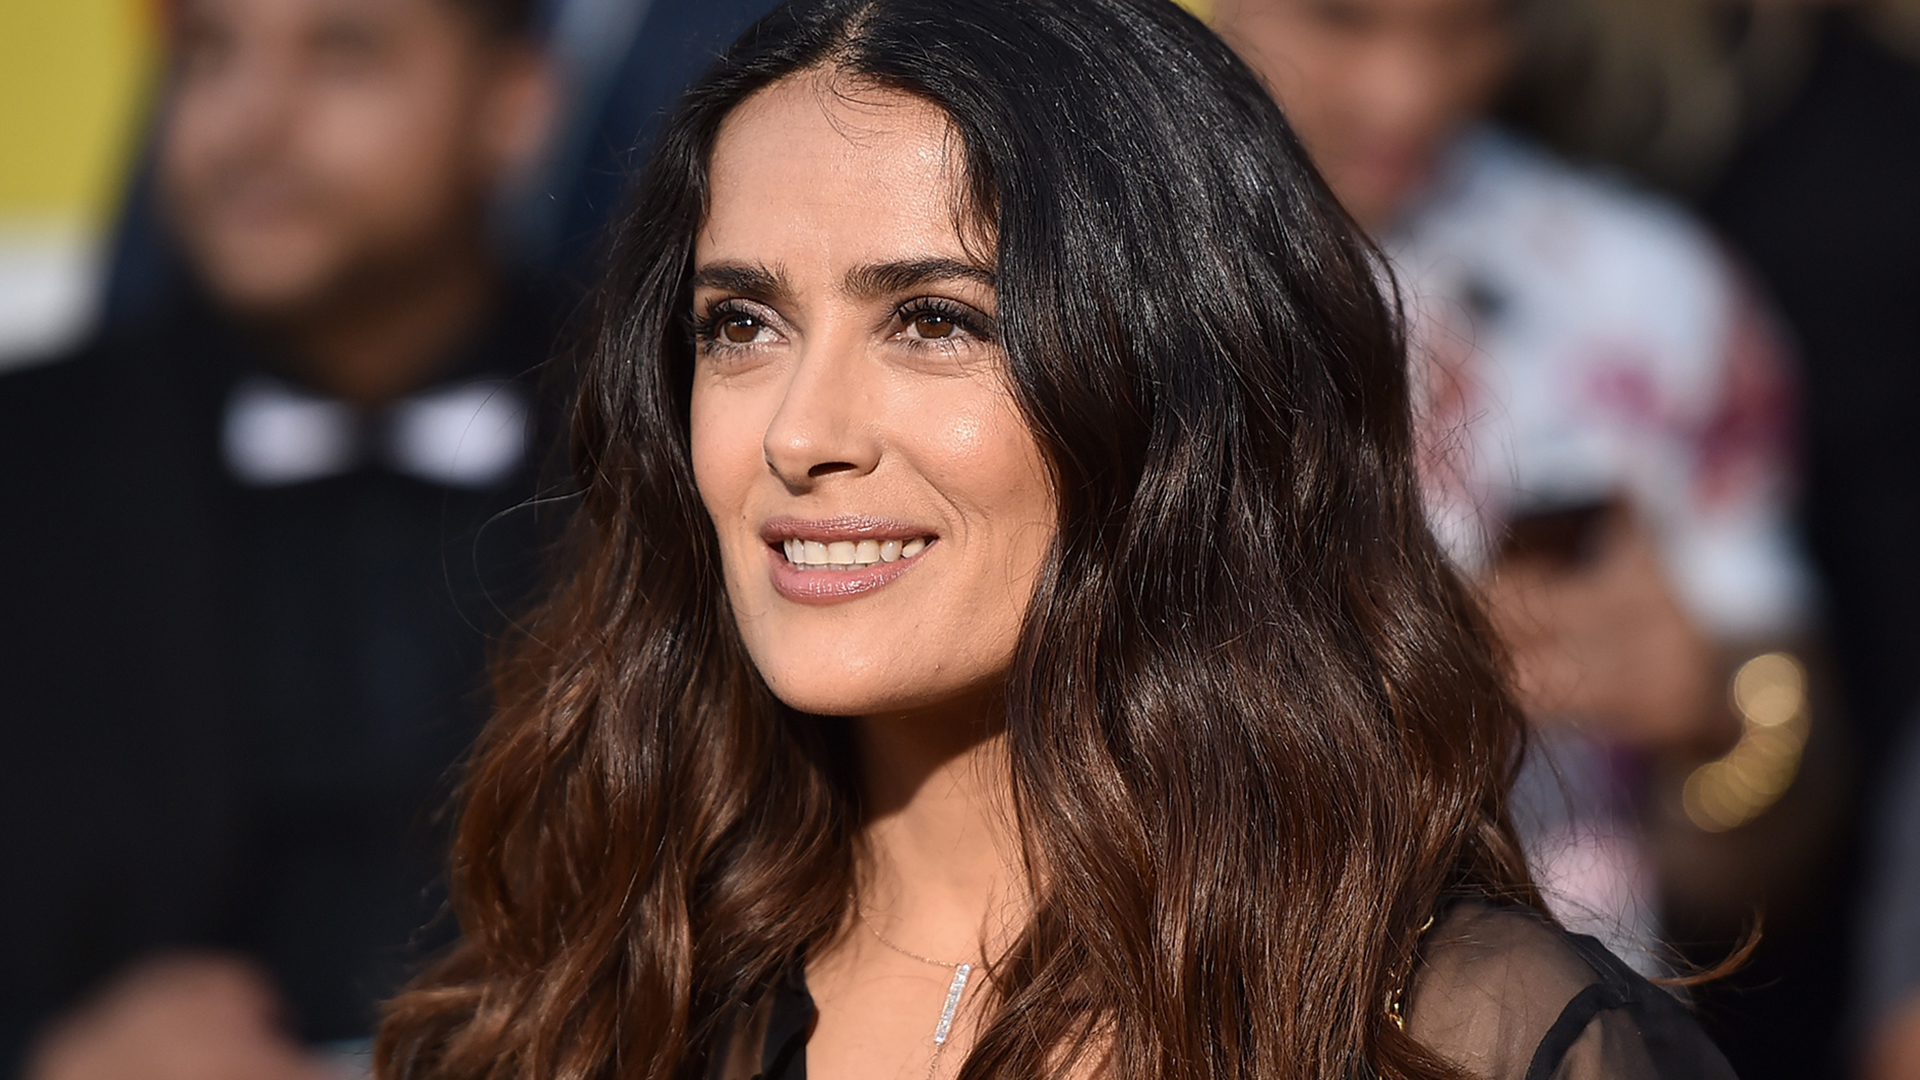 Salma Hayek Sports Pink Hair At 2017 Cannes Film Festival